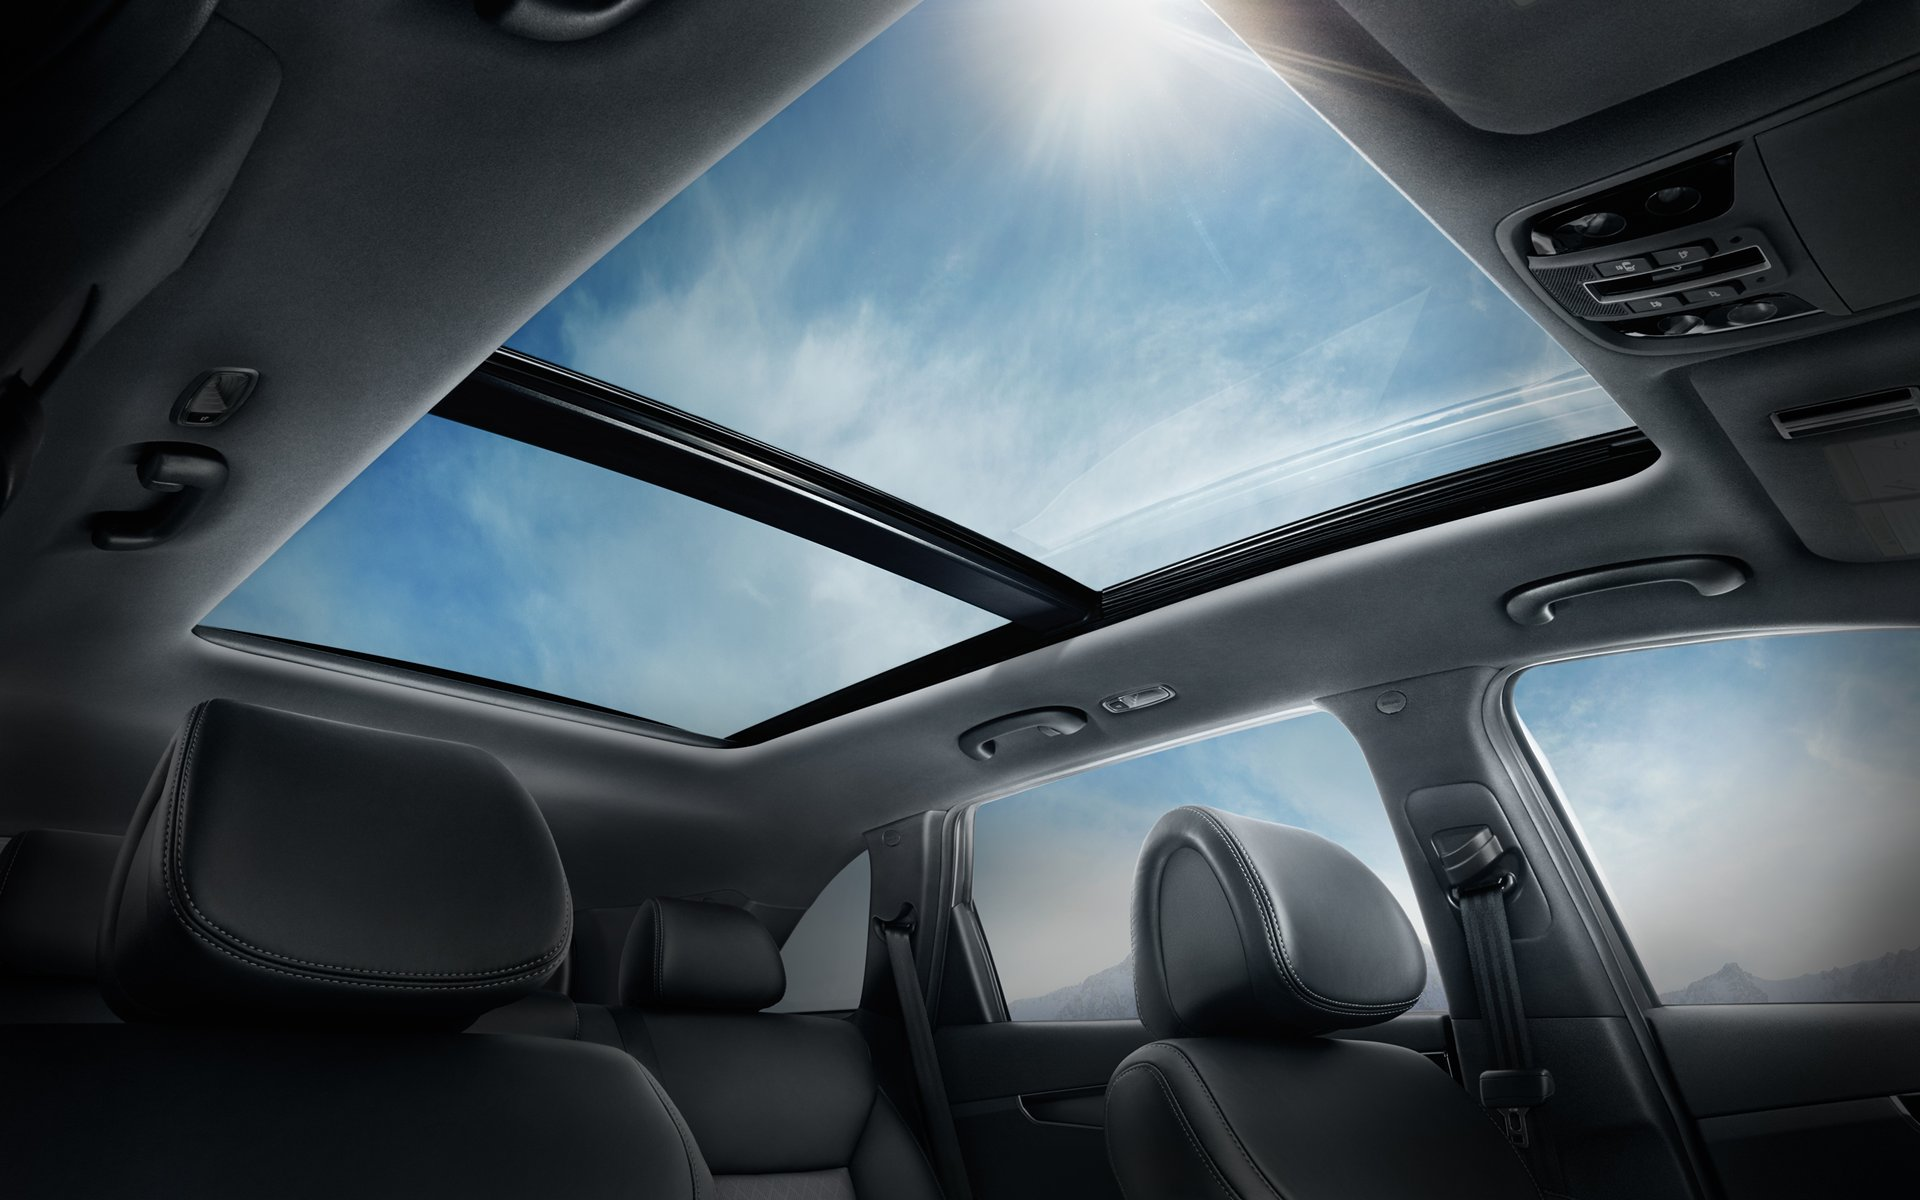 New Kia Sorento Interior image 1